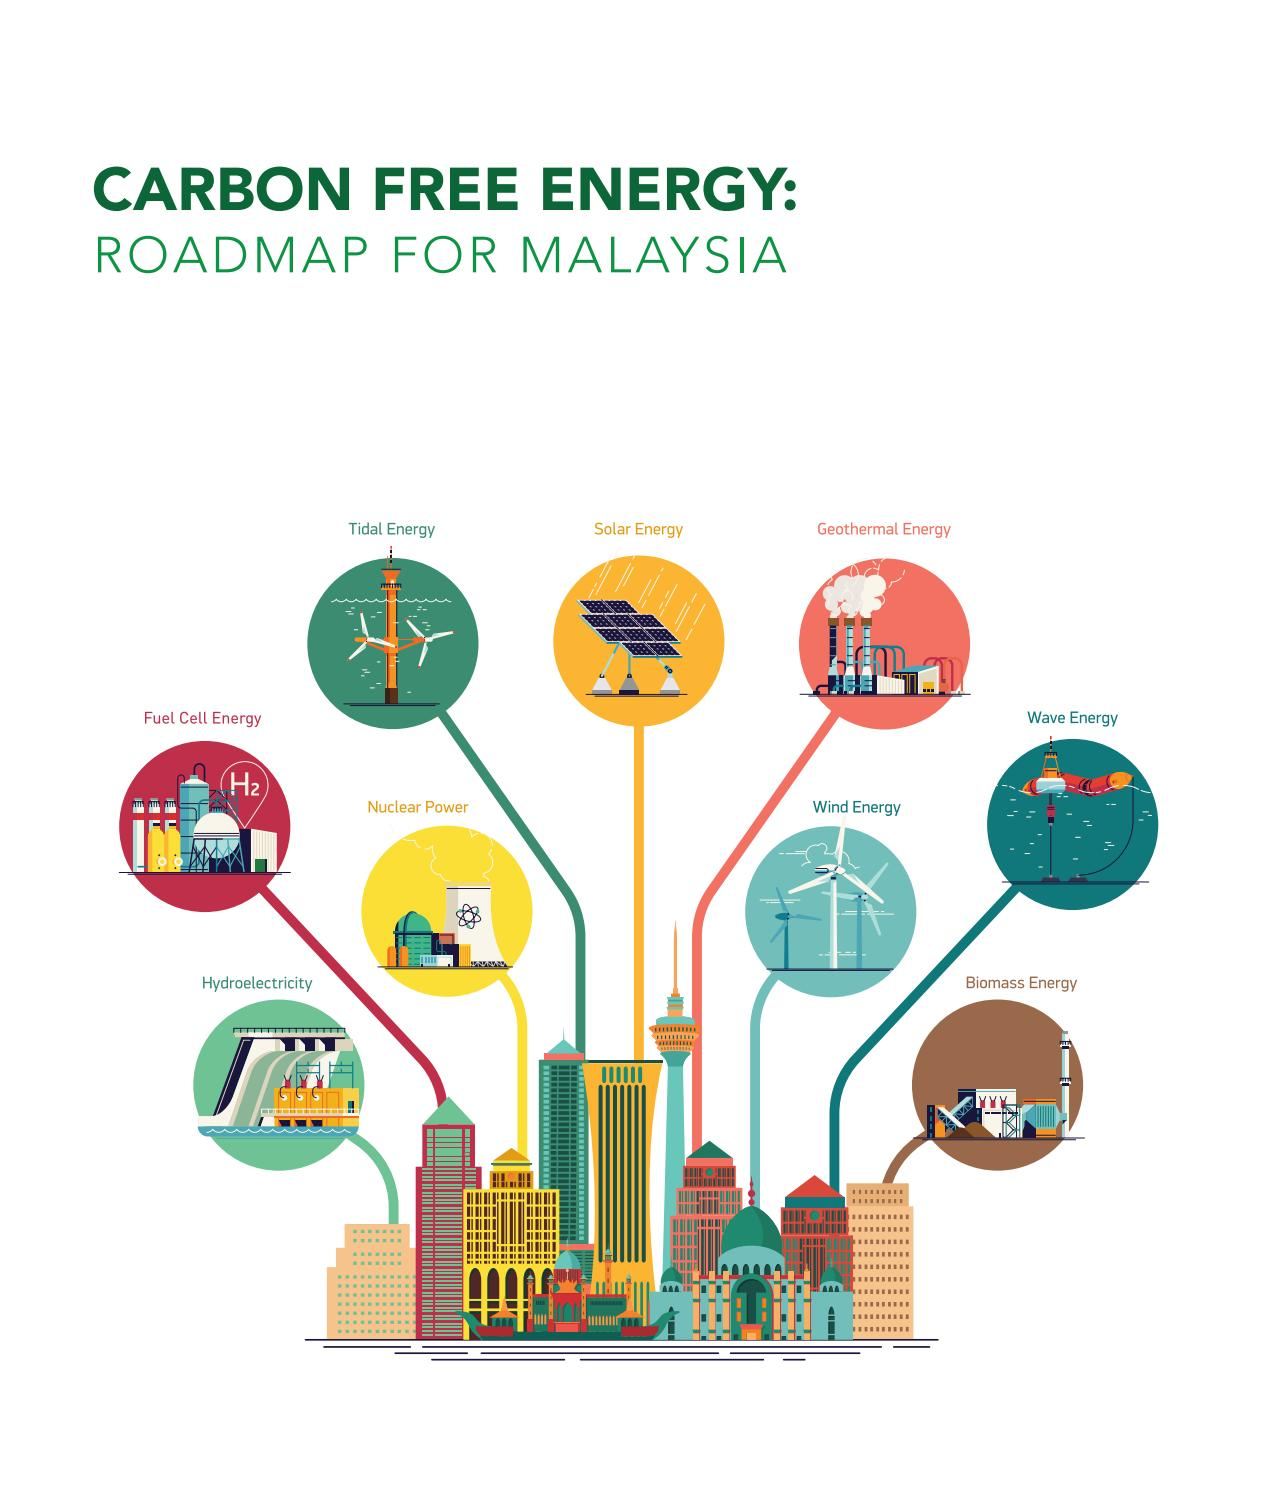 Carbon Free Energy - Roadmap for Malaysia by Academy of